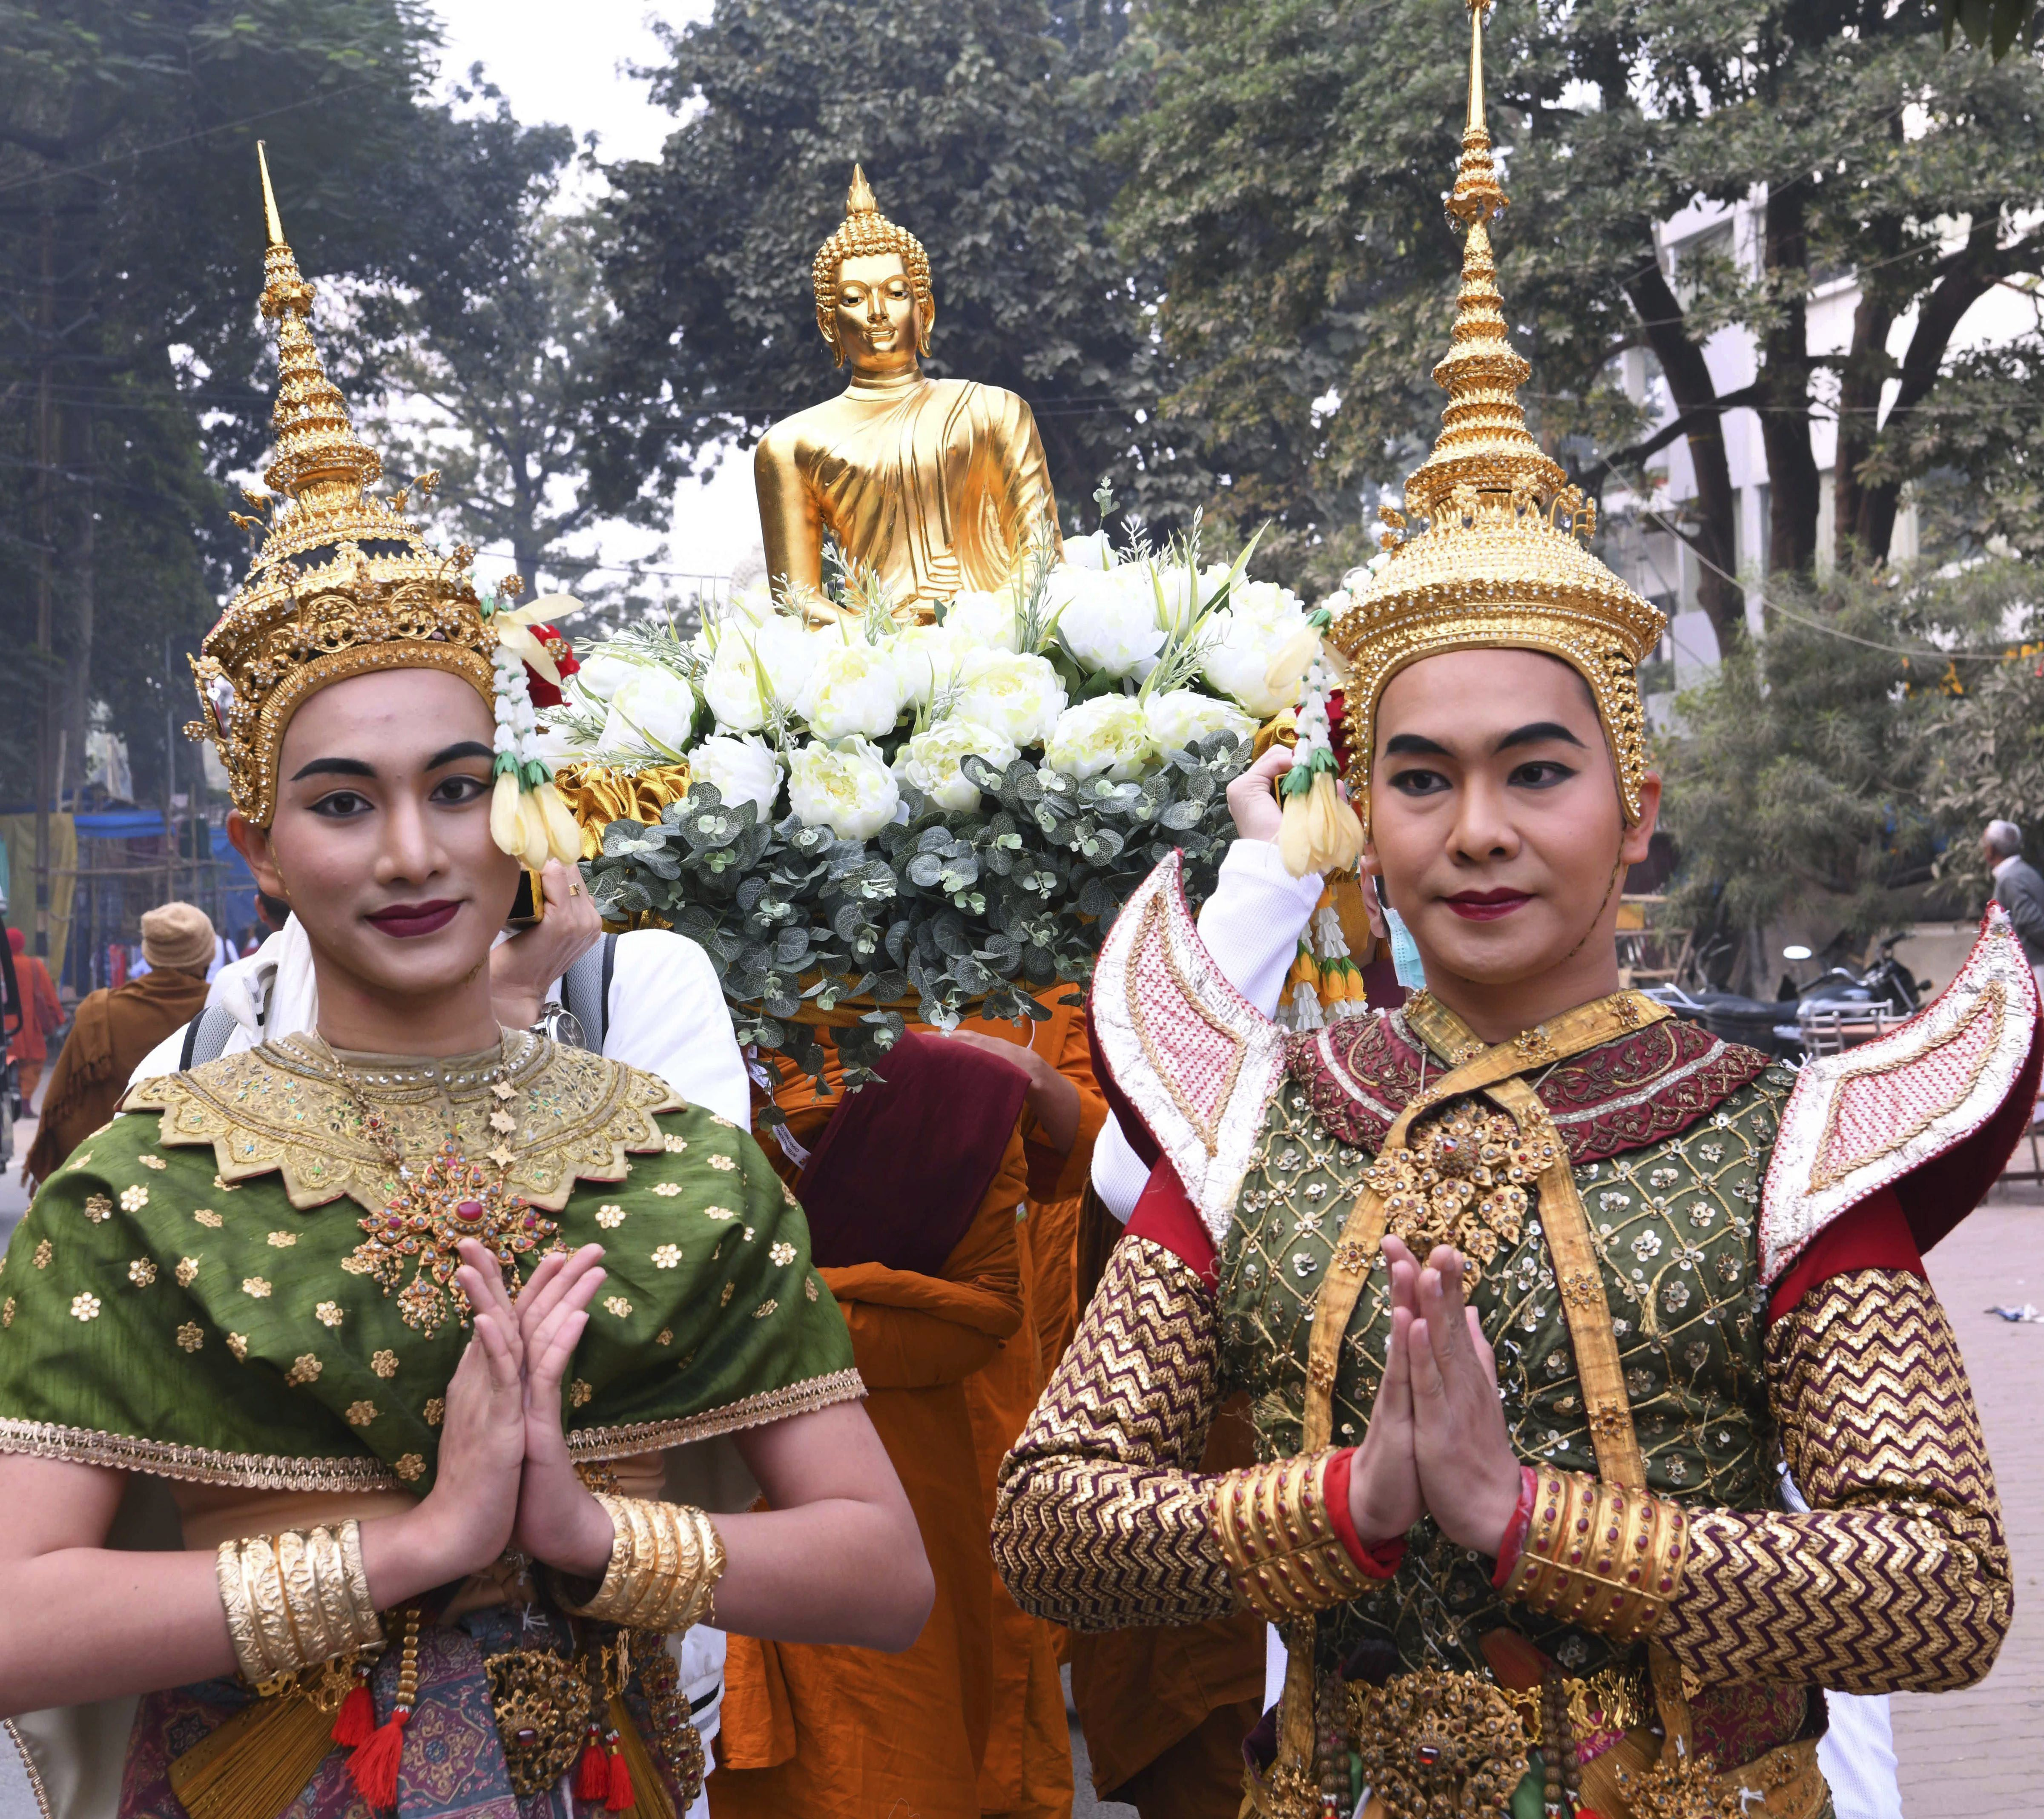 Artists from Thailand take part in a procession on the occasion of the 14th Internationl Tipitika Chanting ceromony at Mahabodhi Temple in Bodhgaya - PTI